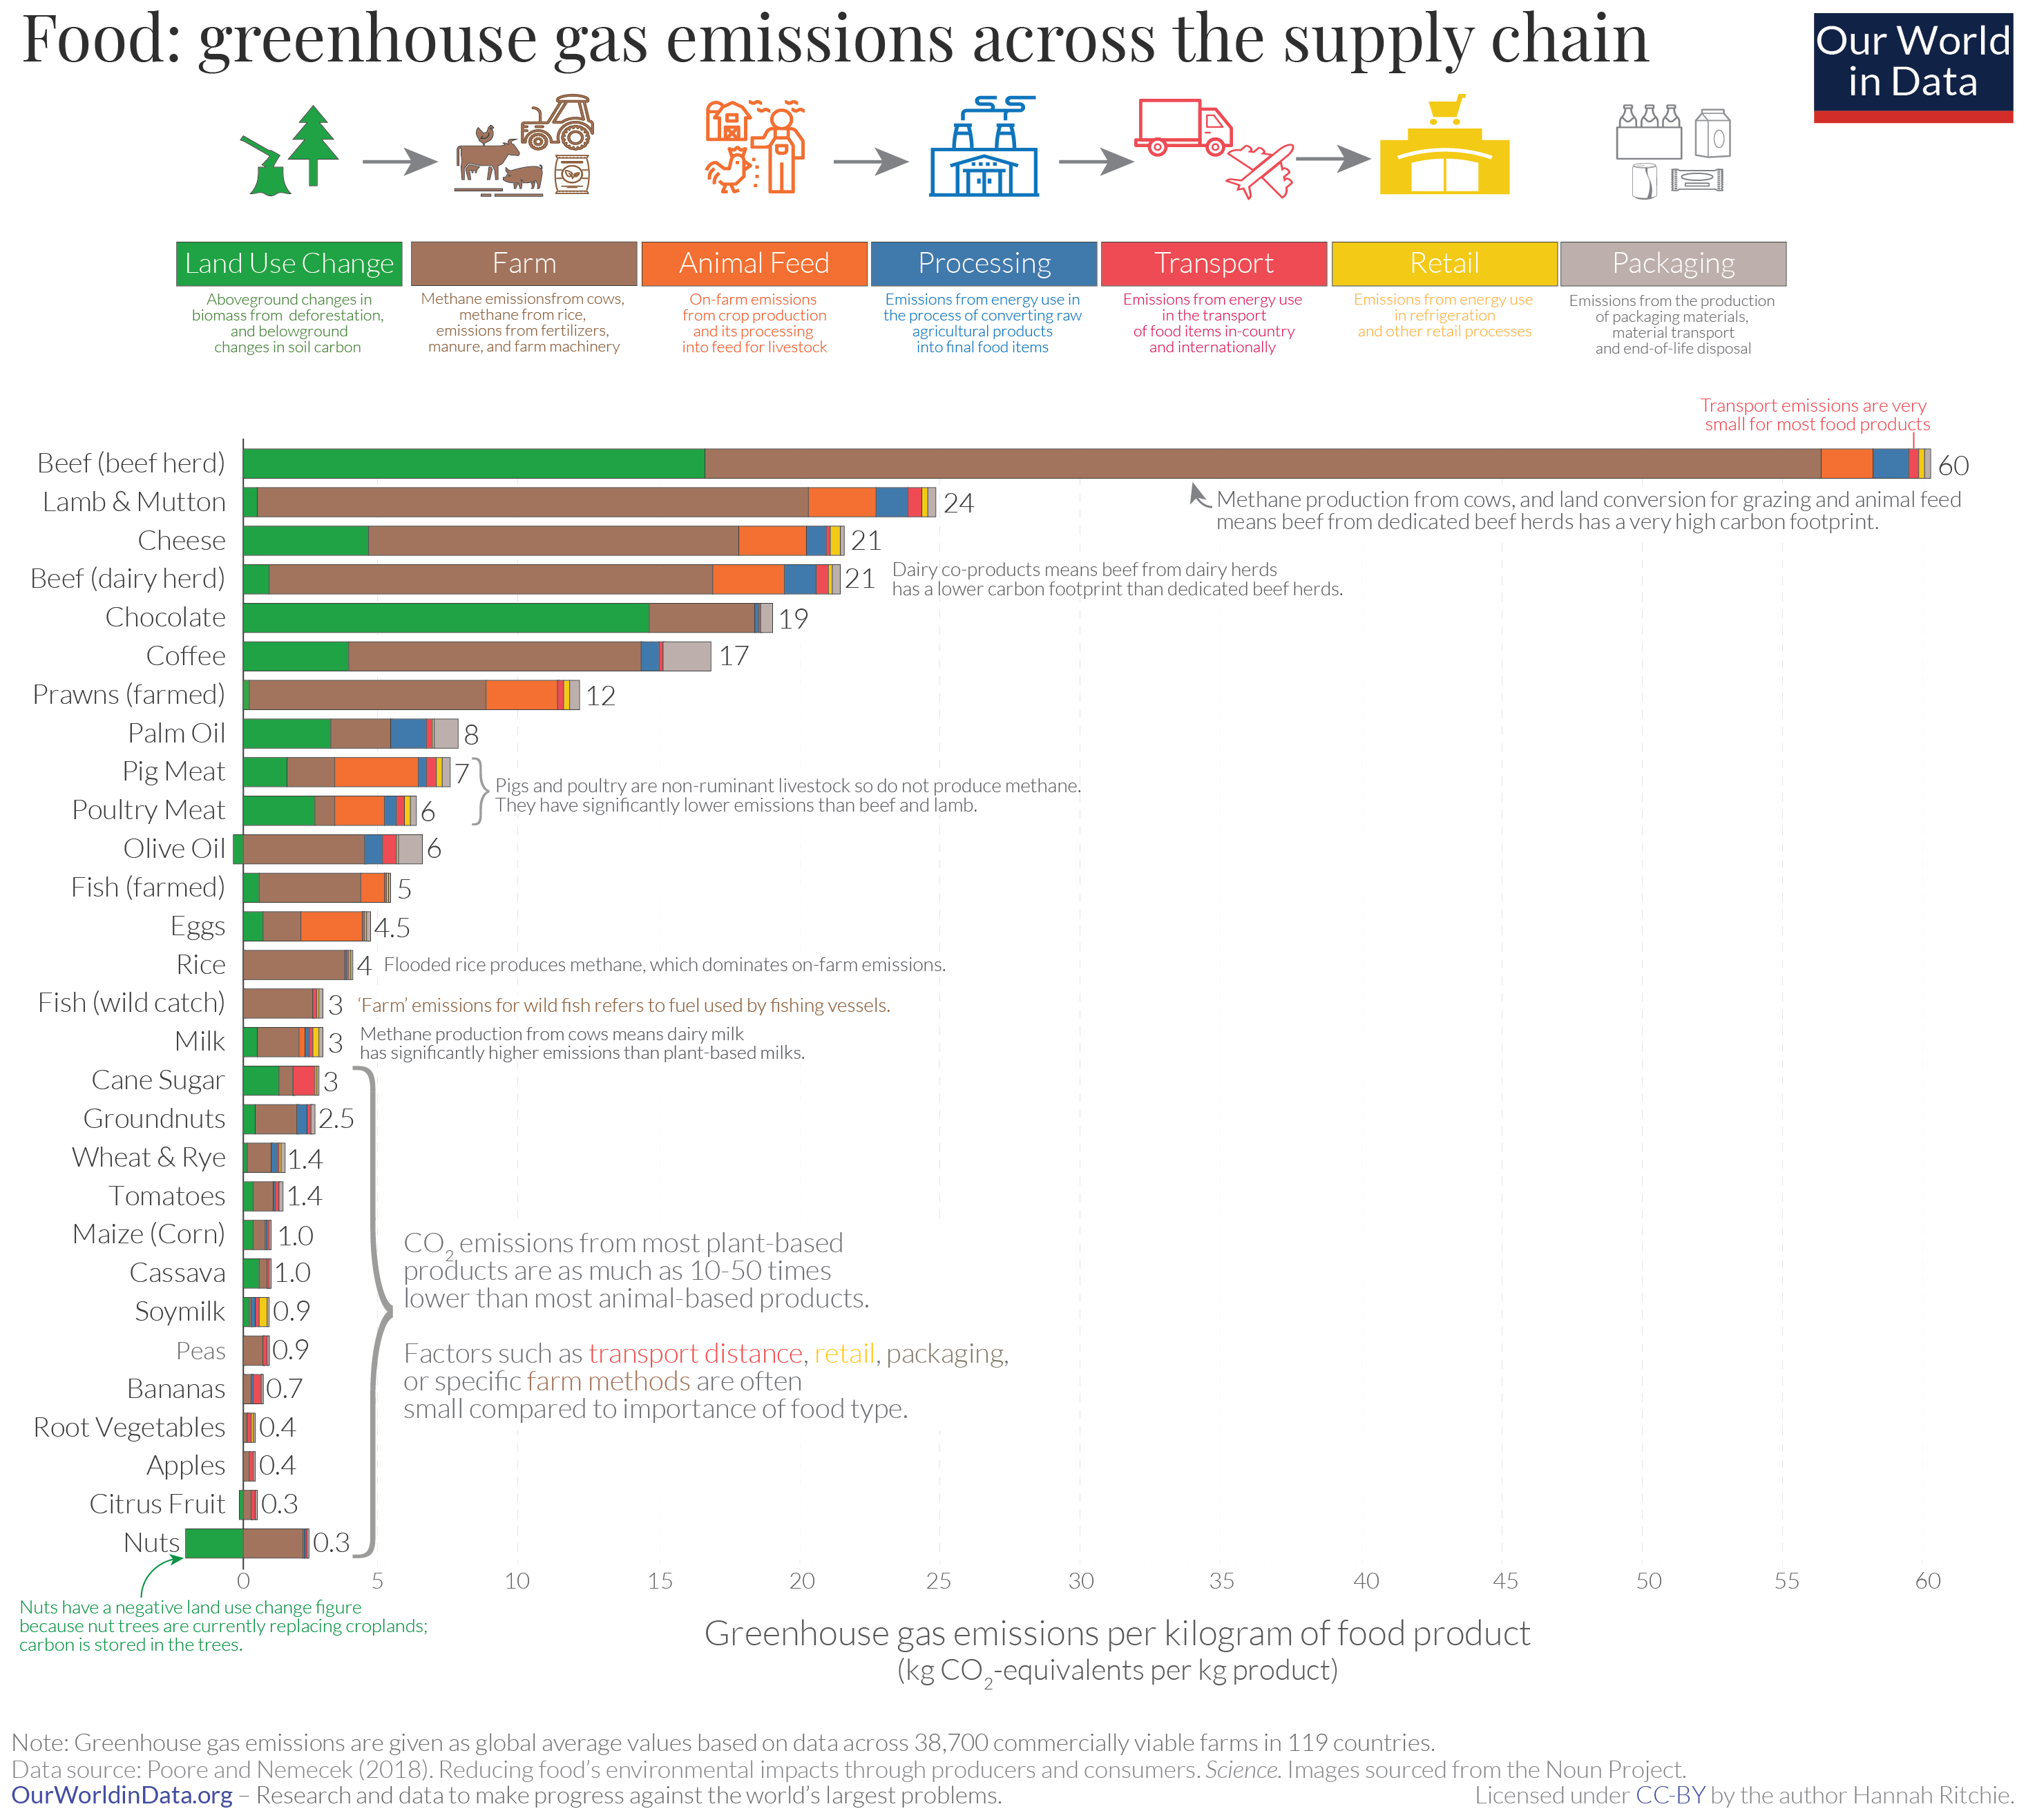 Greenhouse emissions across the supply chain.